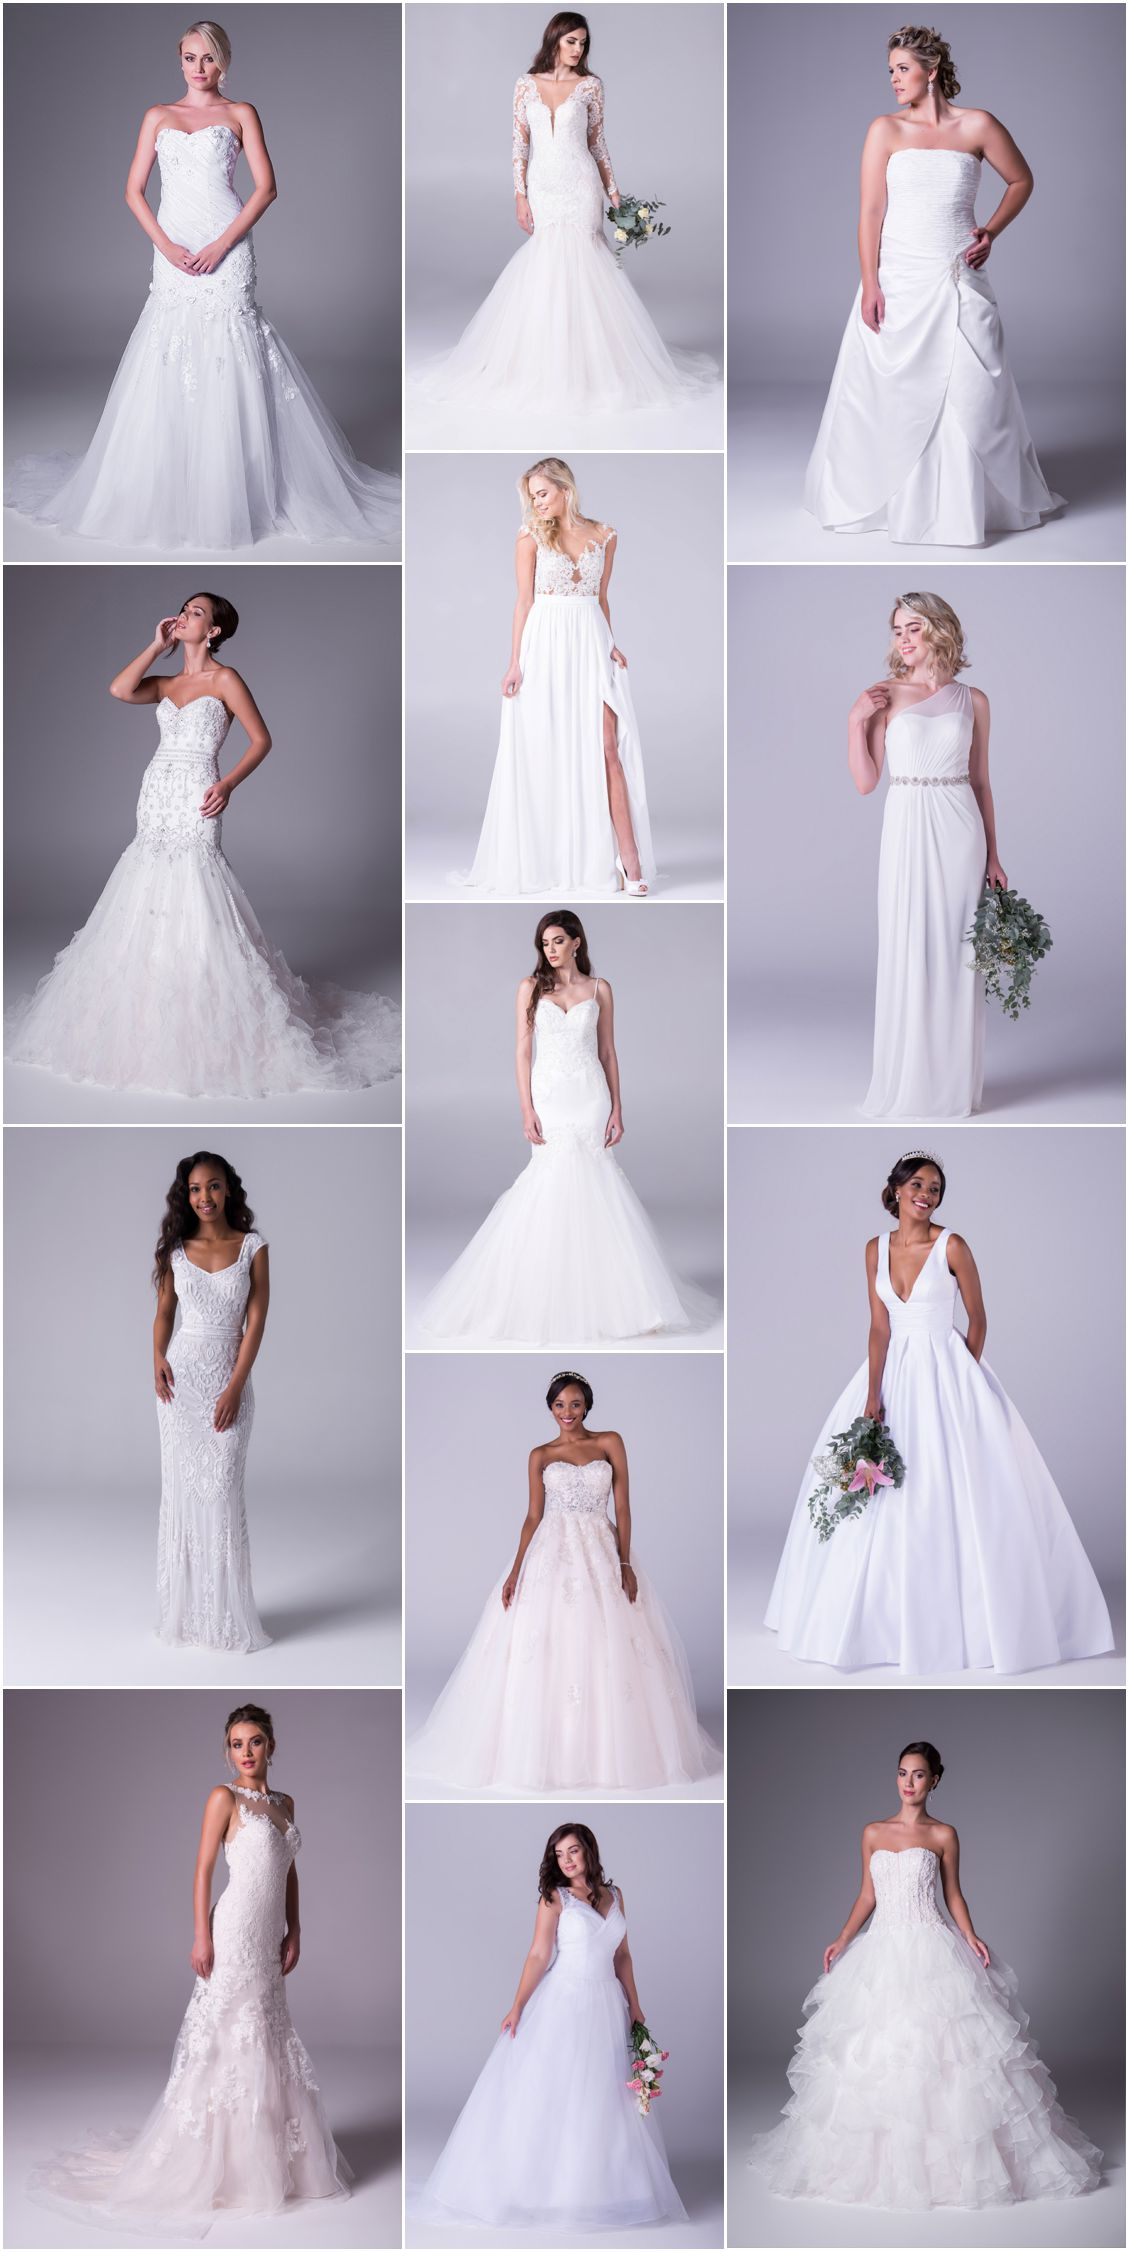 Best wedding gowns and dresses for your body type more wedding gowns ideas for different body types from bride co junglespirit Image collections